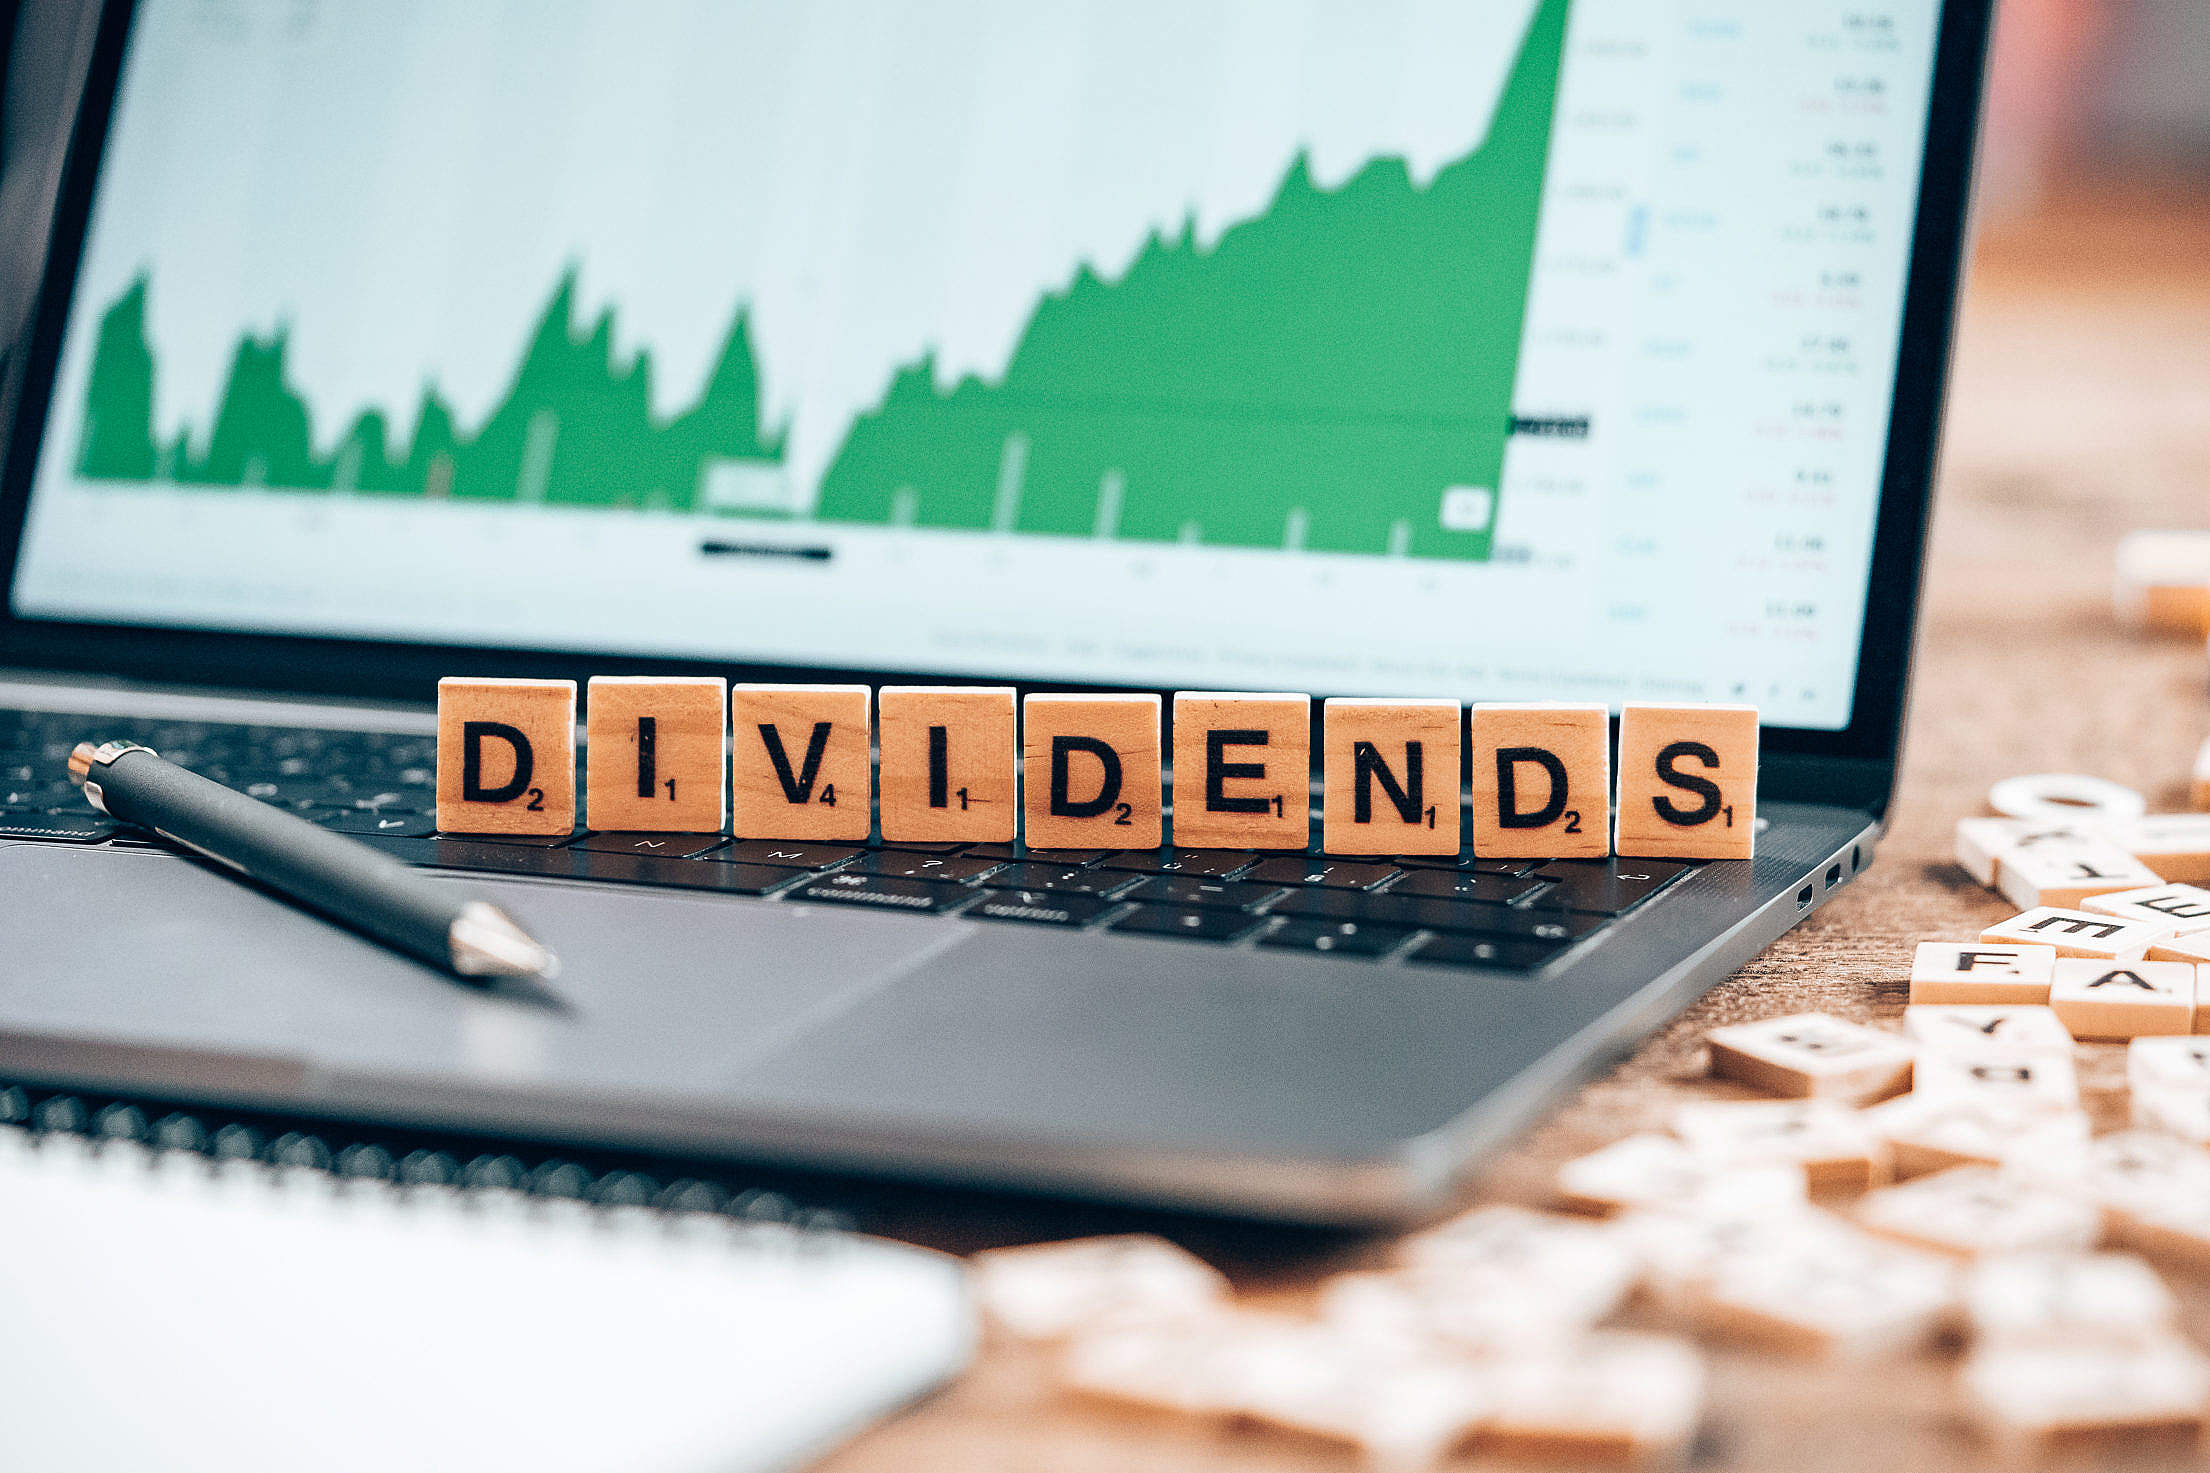 Dividends Free Stock Photo